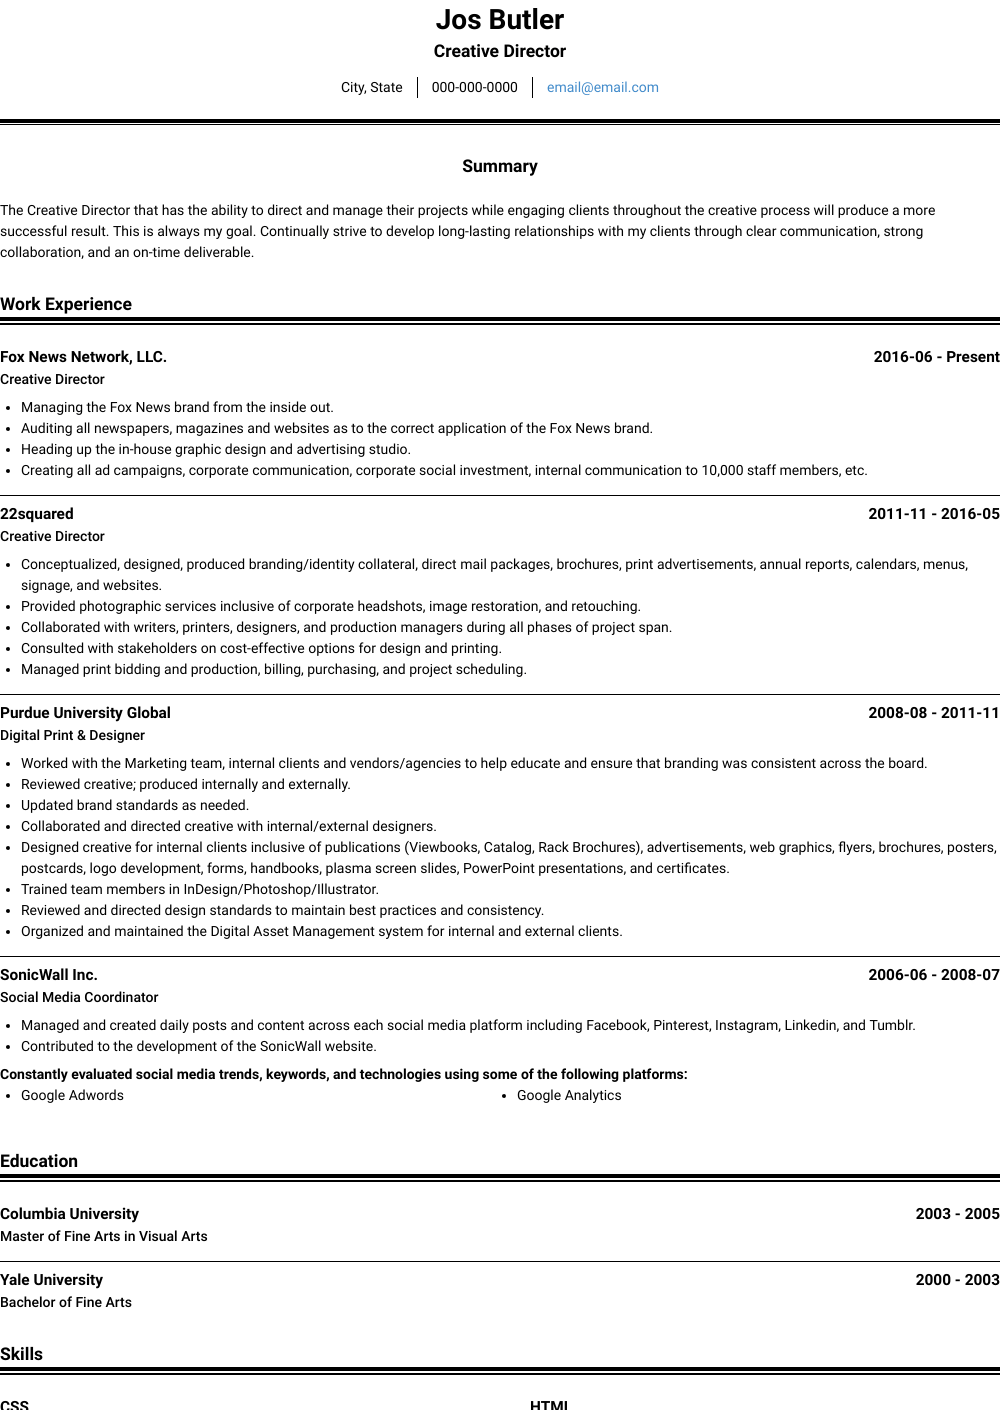 Creative Director Resume Sample and Template